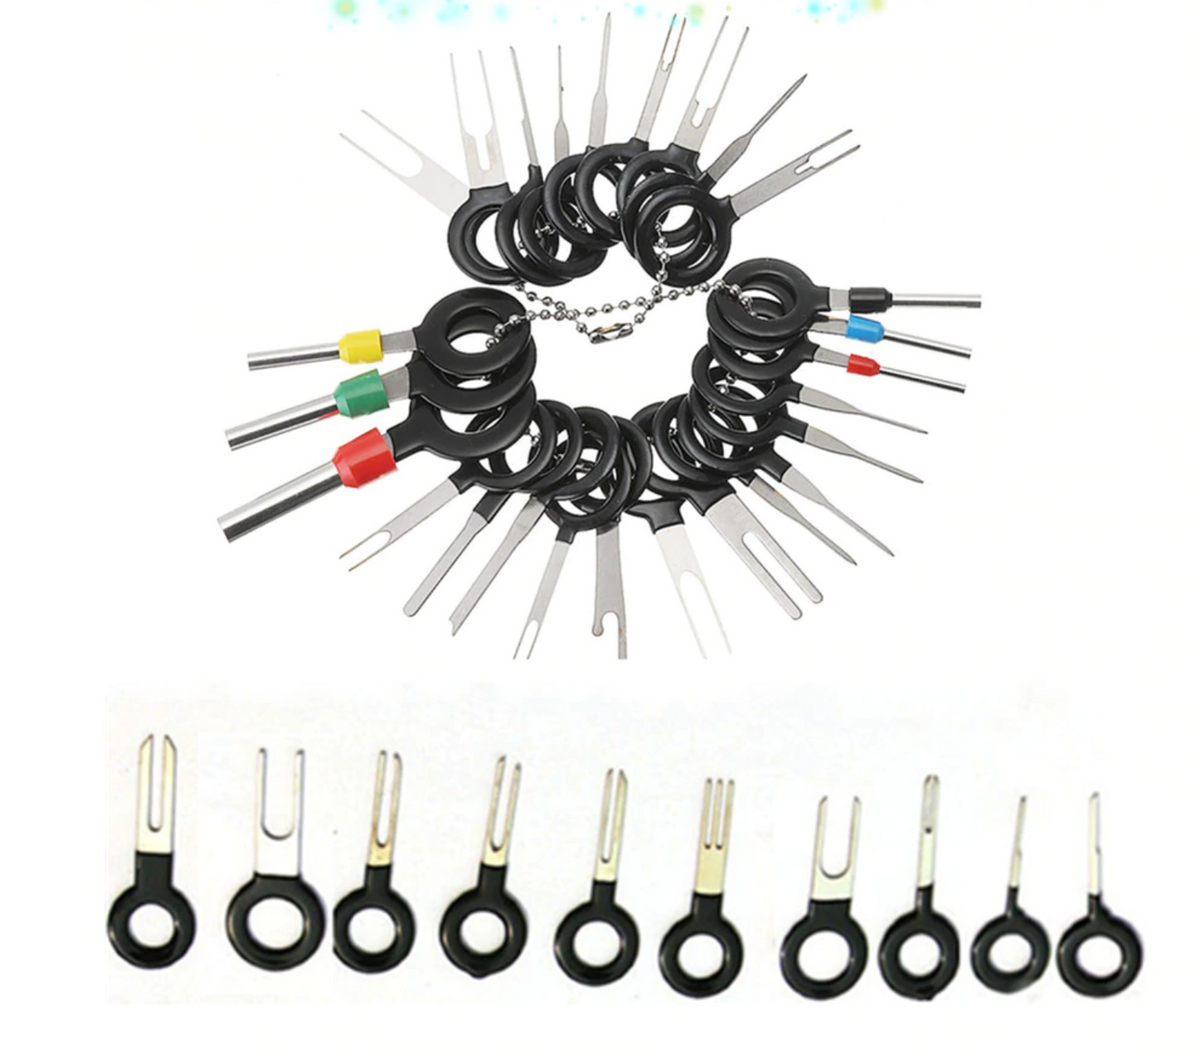 WIRE TERMINAL REMOVAL KIT